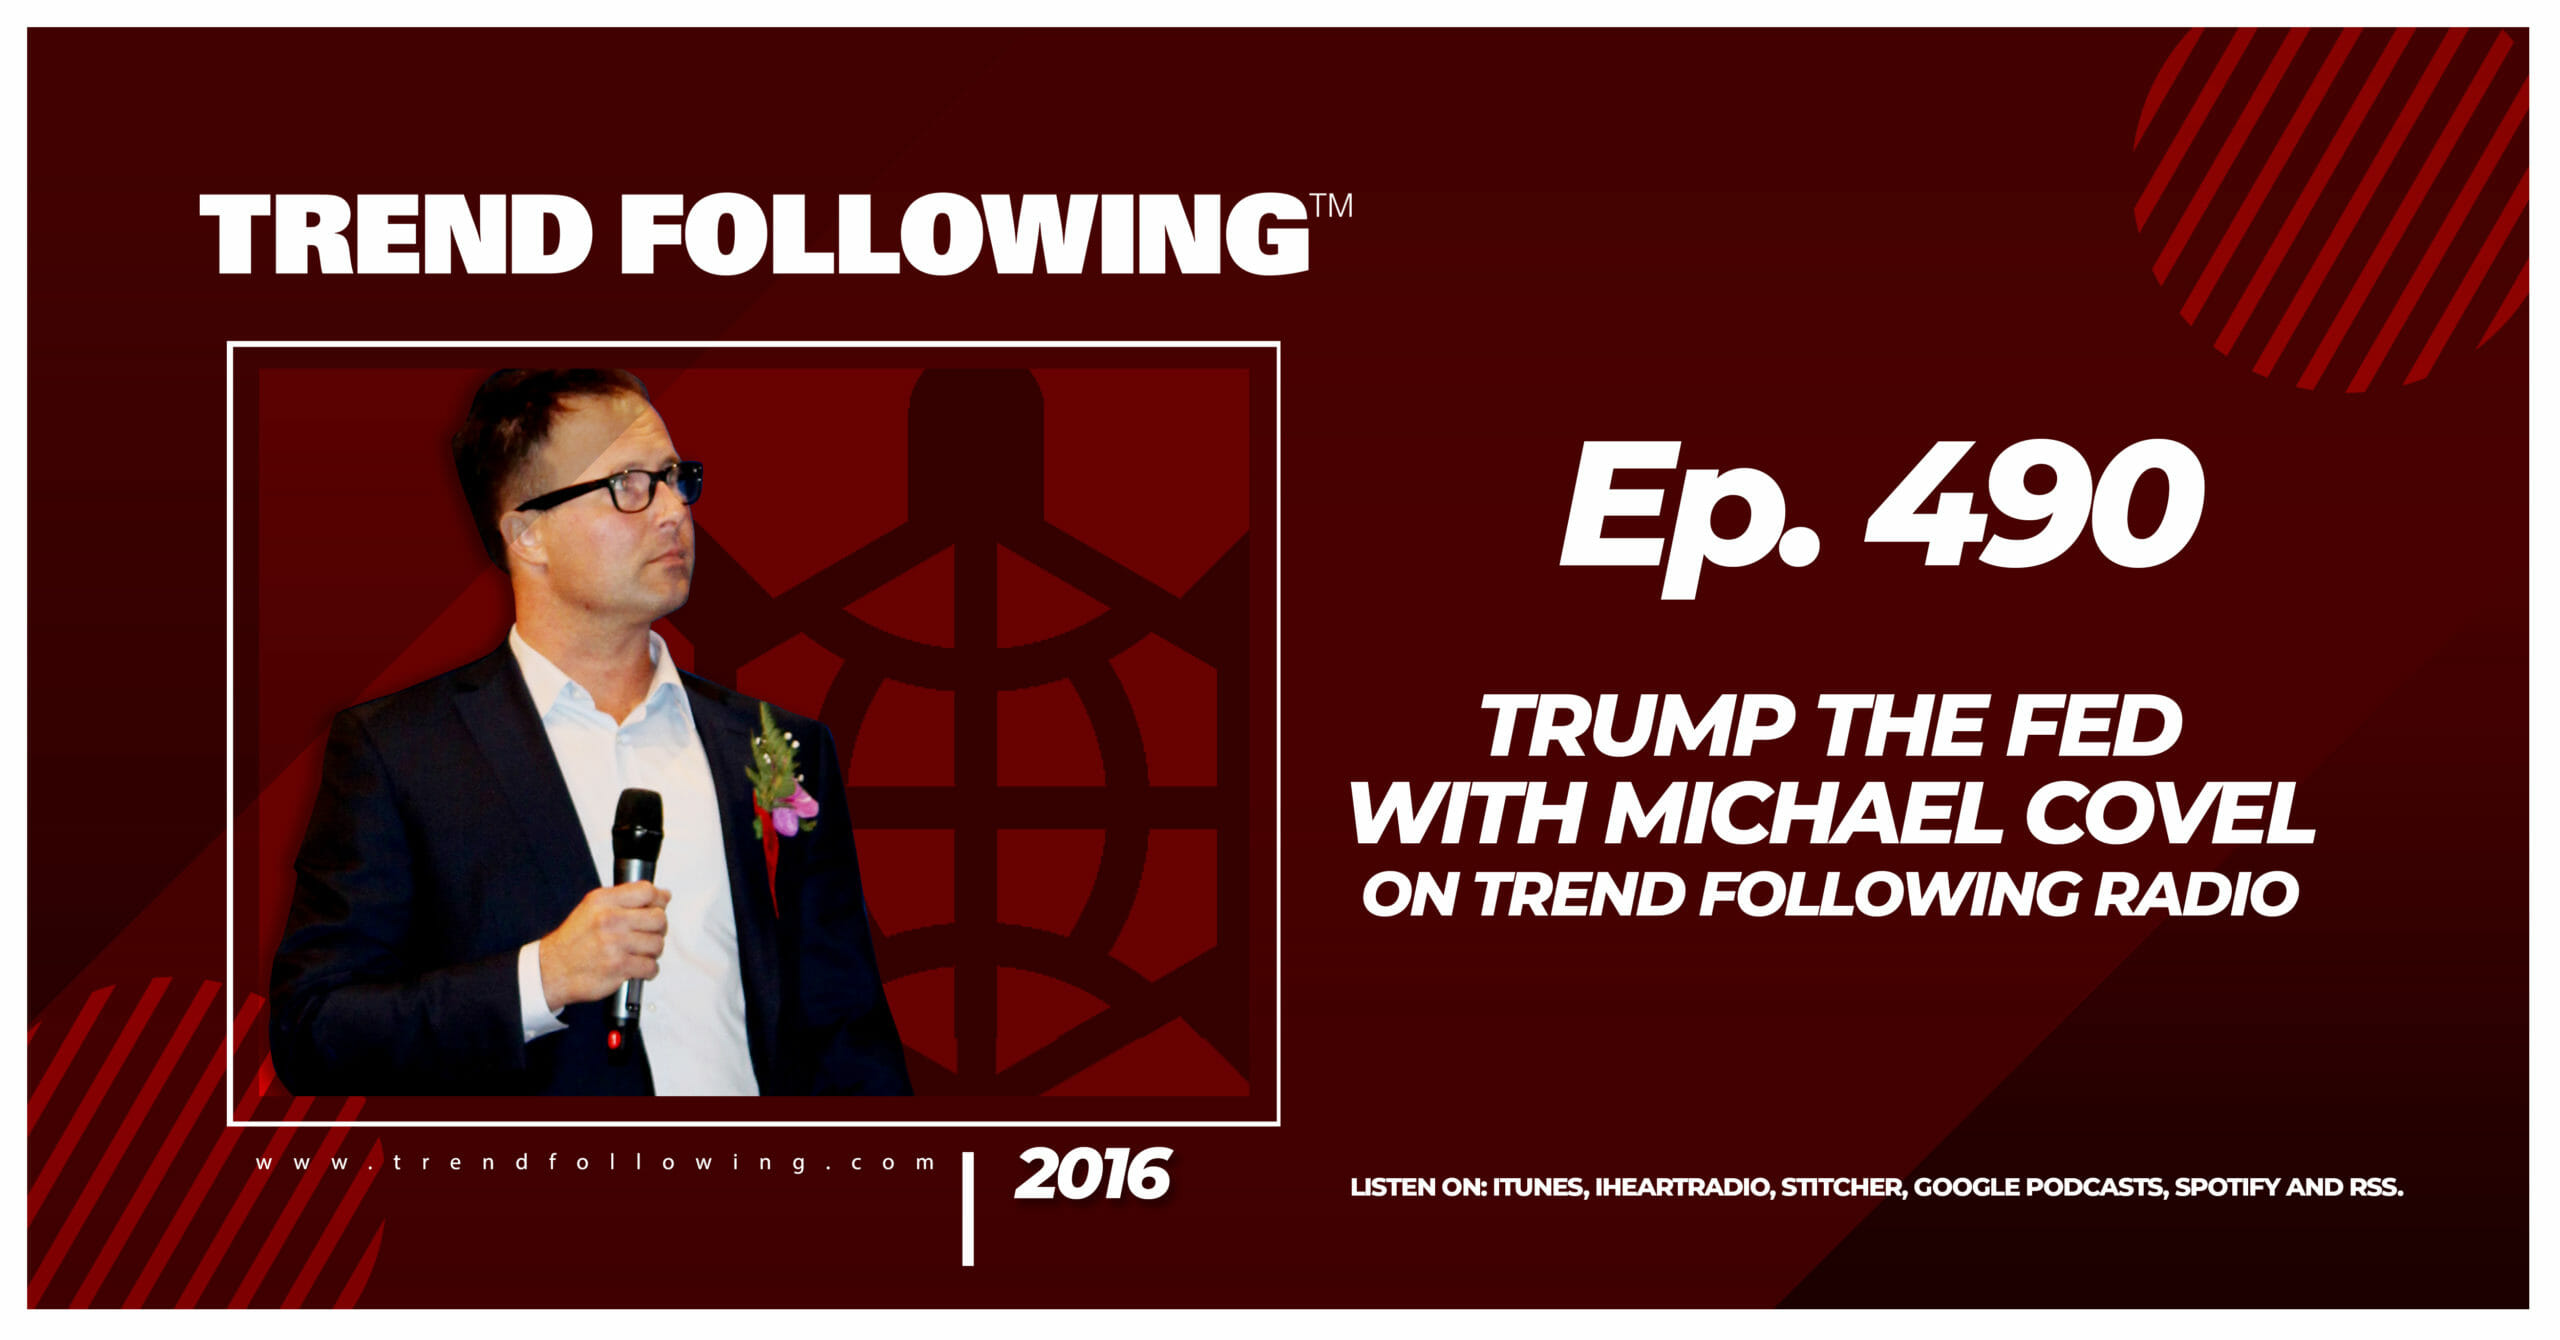 Trump the Fed with Michael Covel on Trend Following Radio